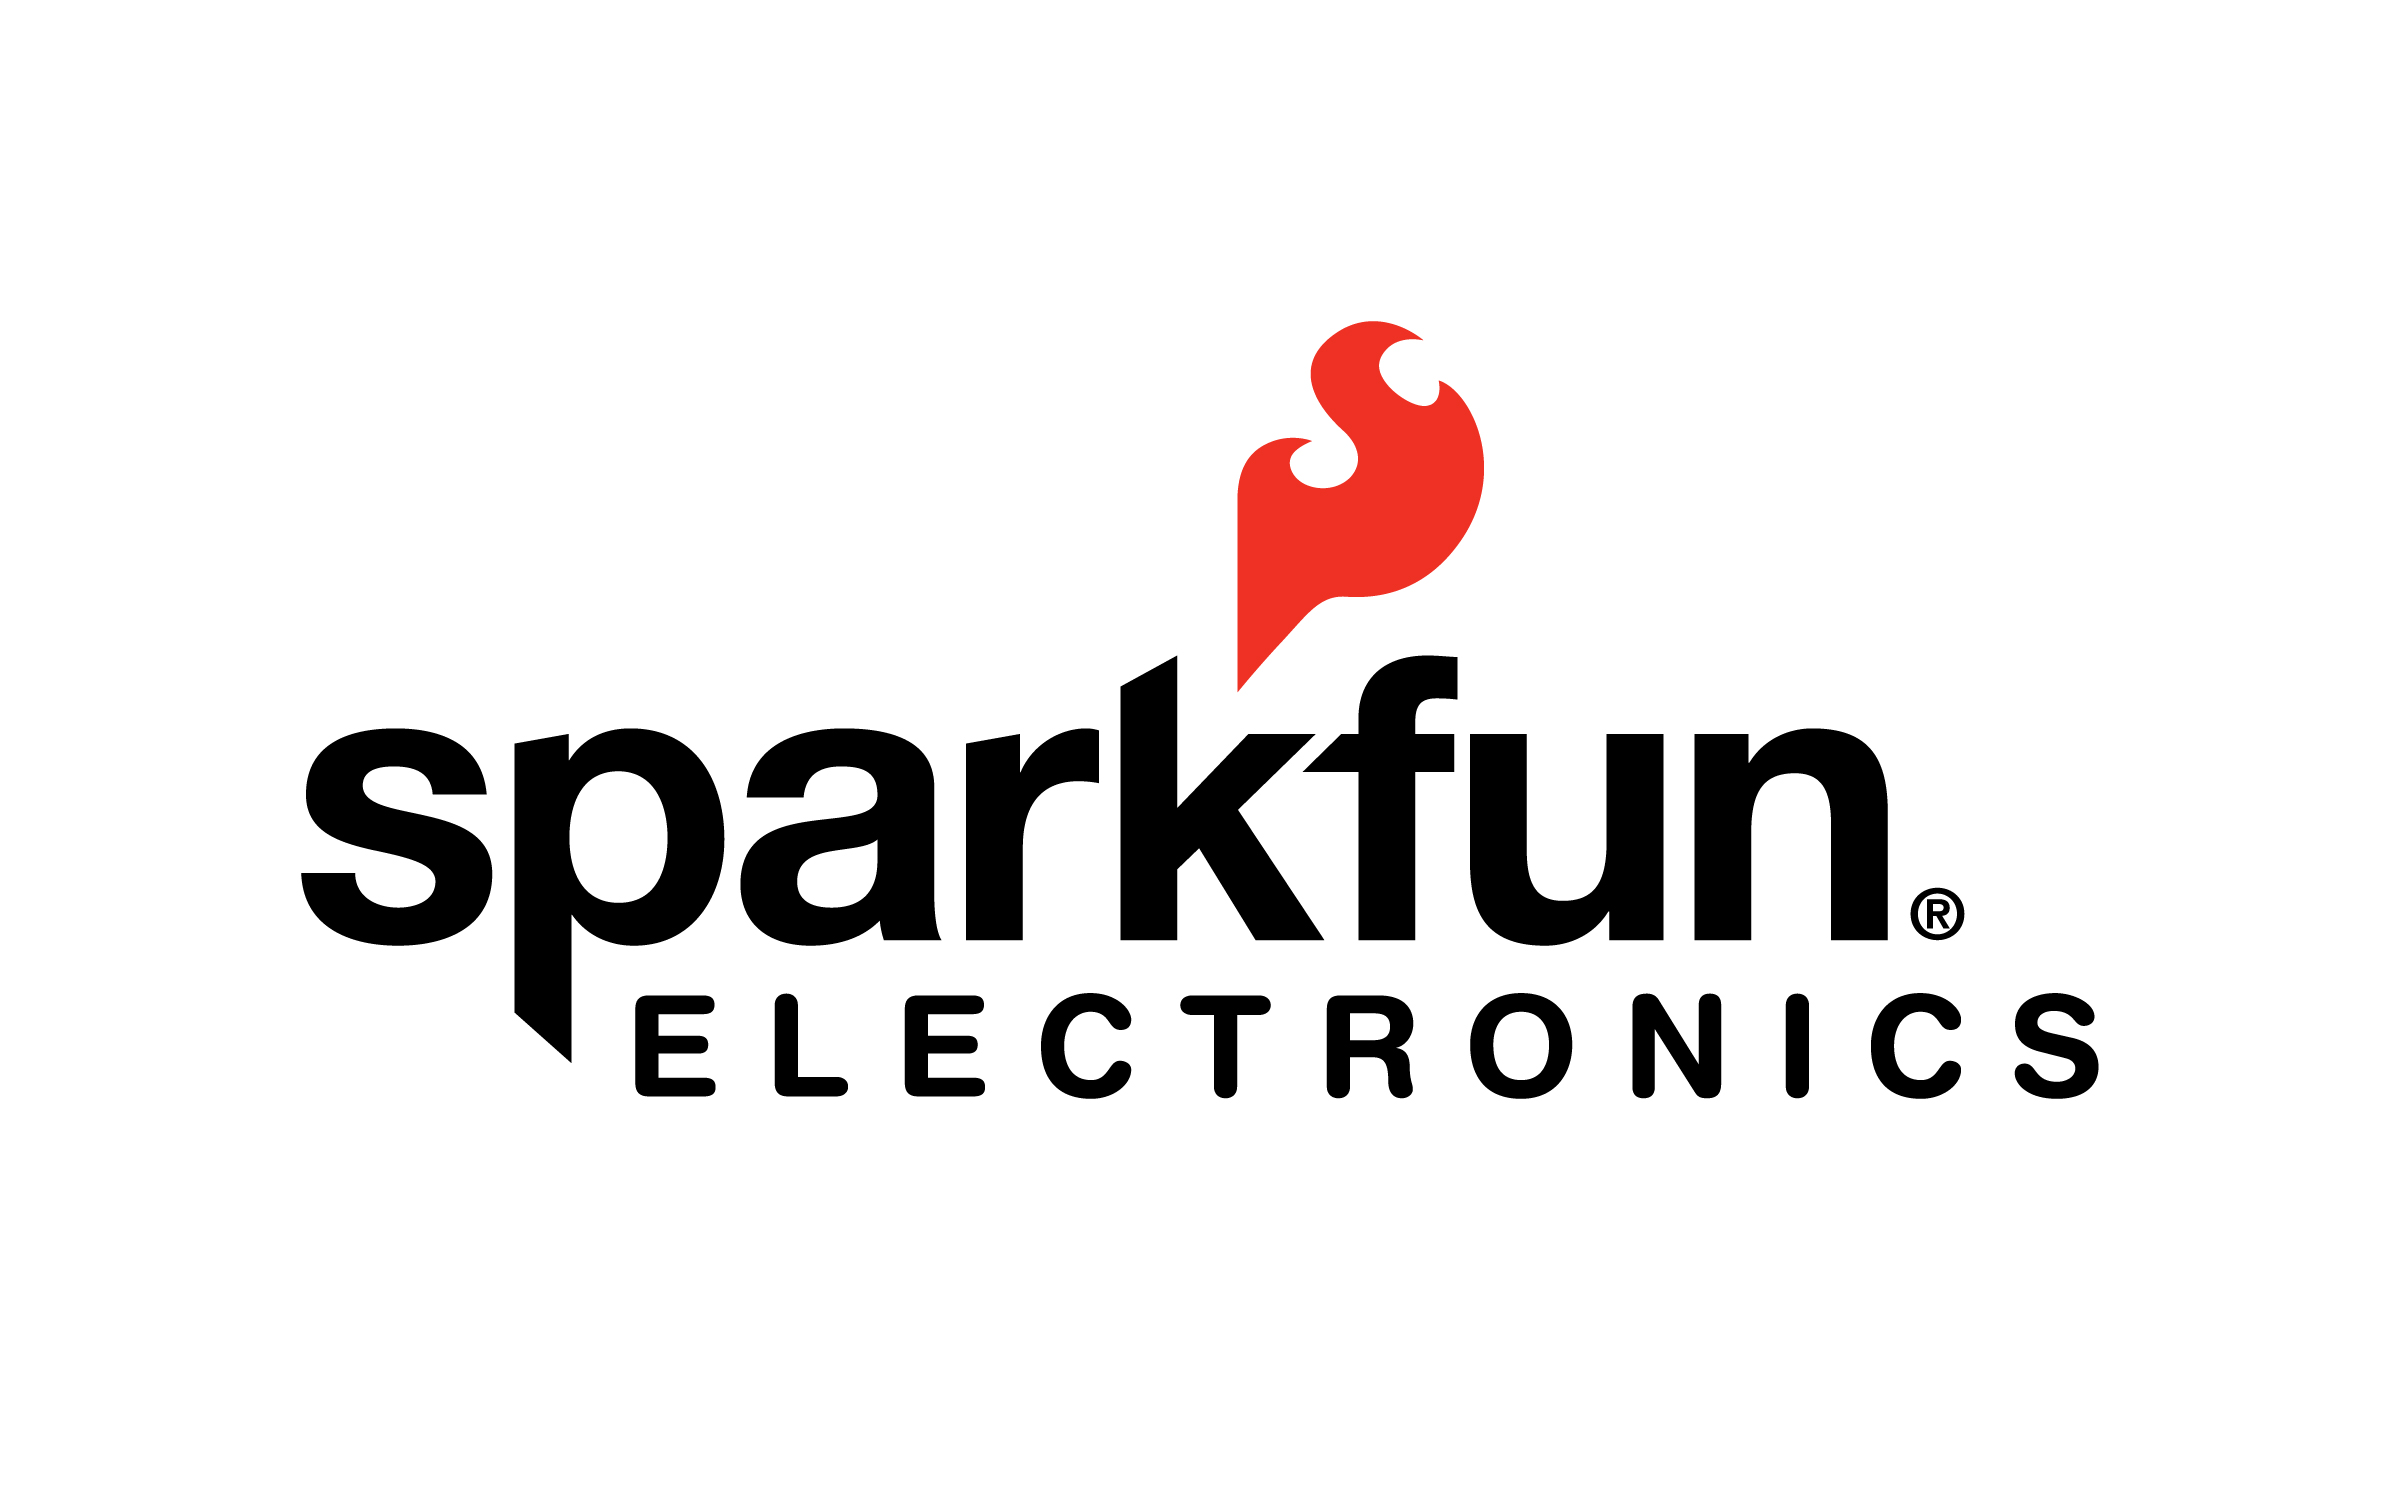 sparkfun electronics pilots new engineering curricula at the university of colorado boulder